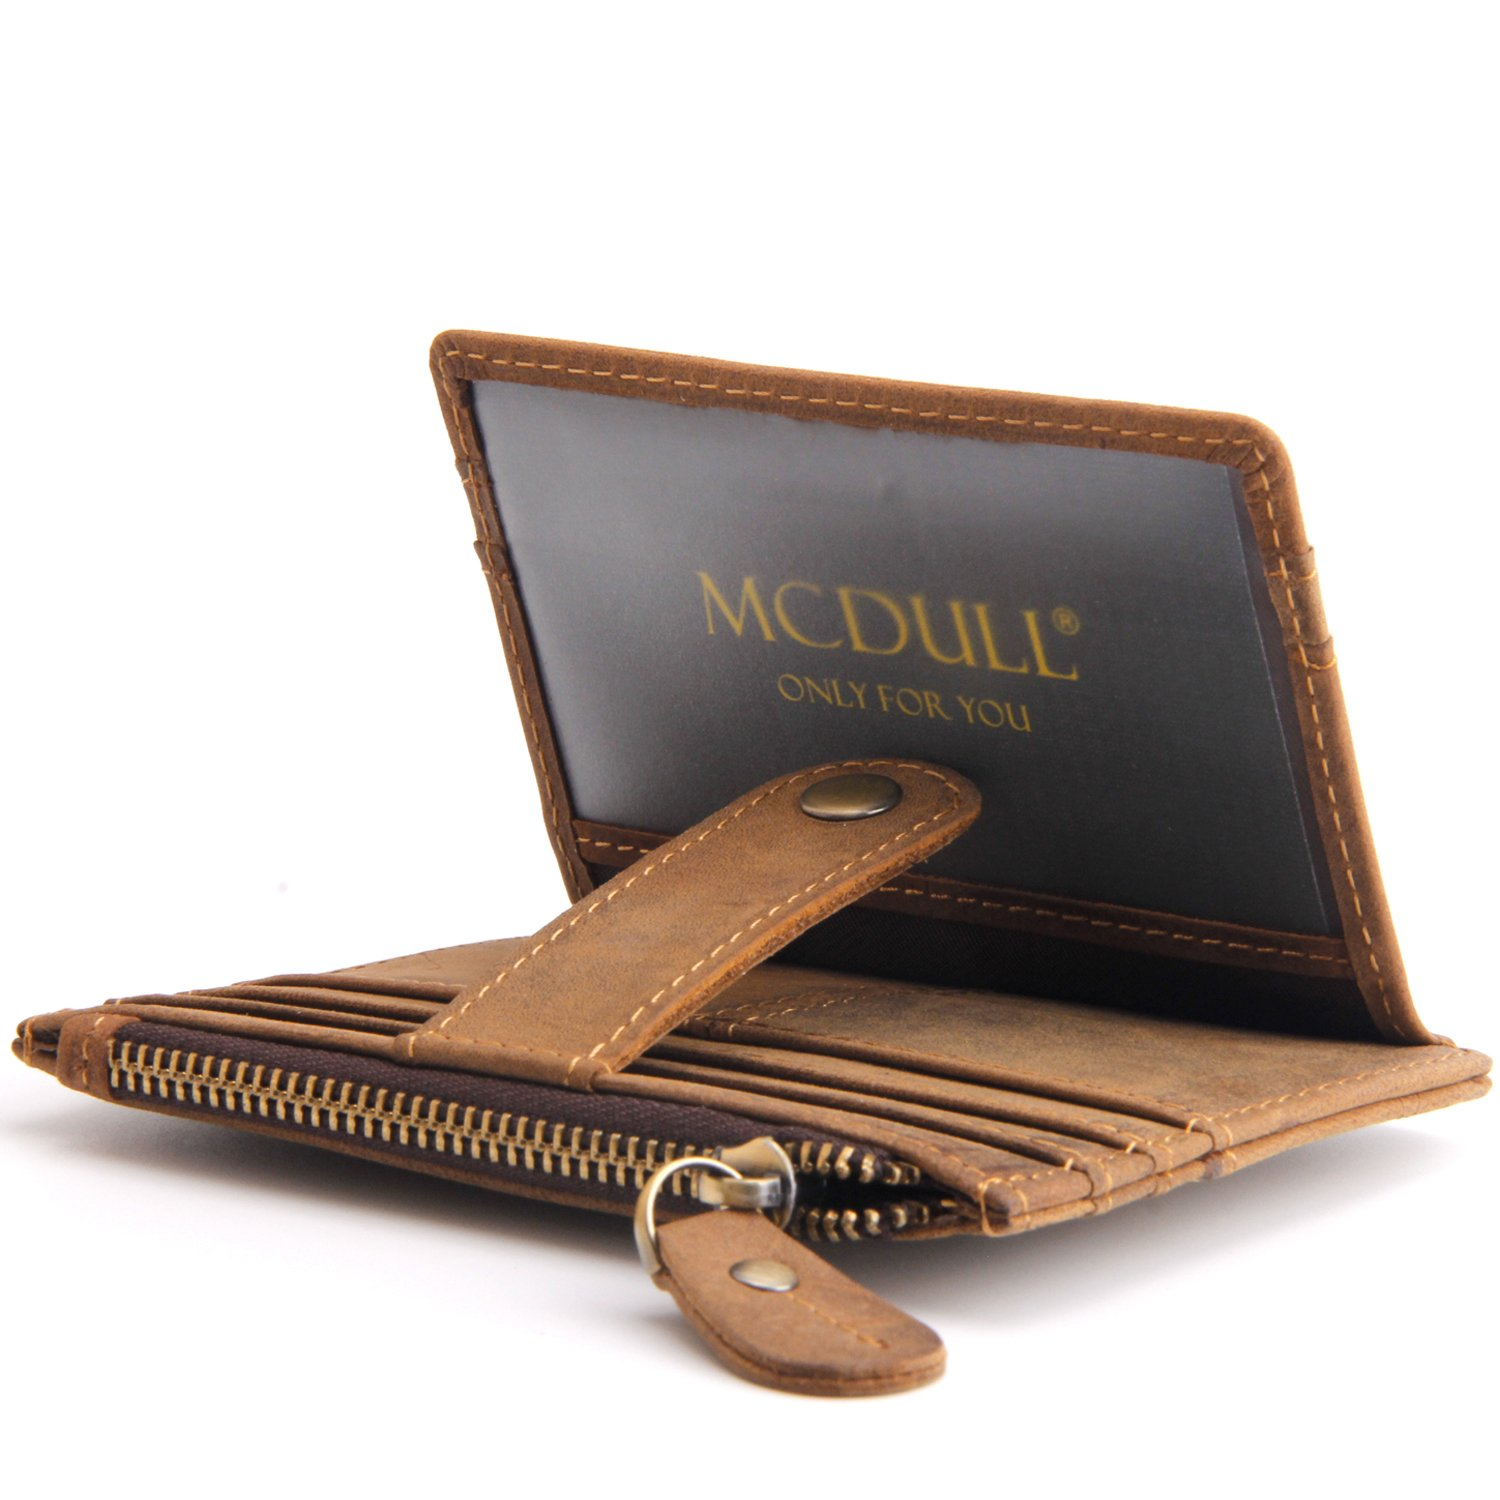 Mcdull RFID Front Pocket Wallet Mini Minimalist Business Wallet Slim Wallet Genuine Leather with Zipper &ID Window (Crazy Horse Brown L1)